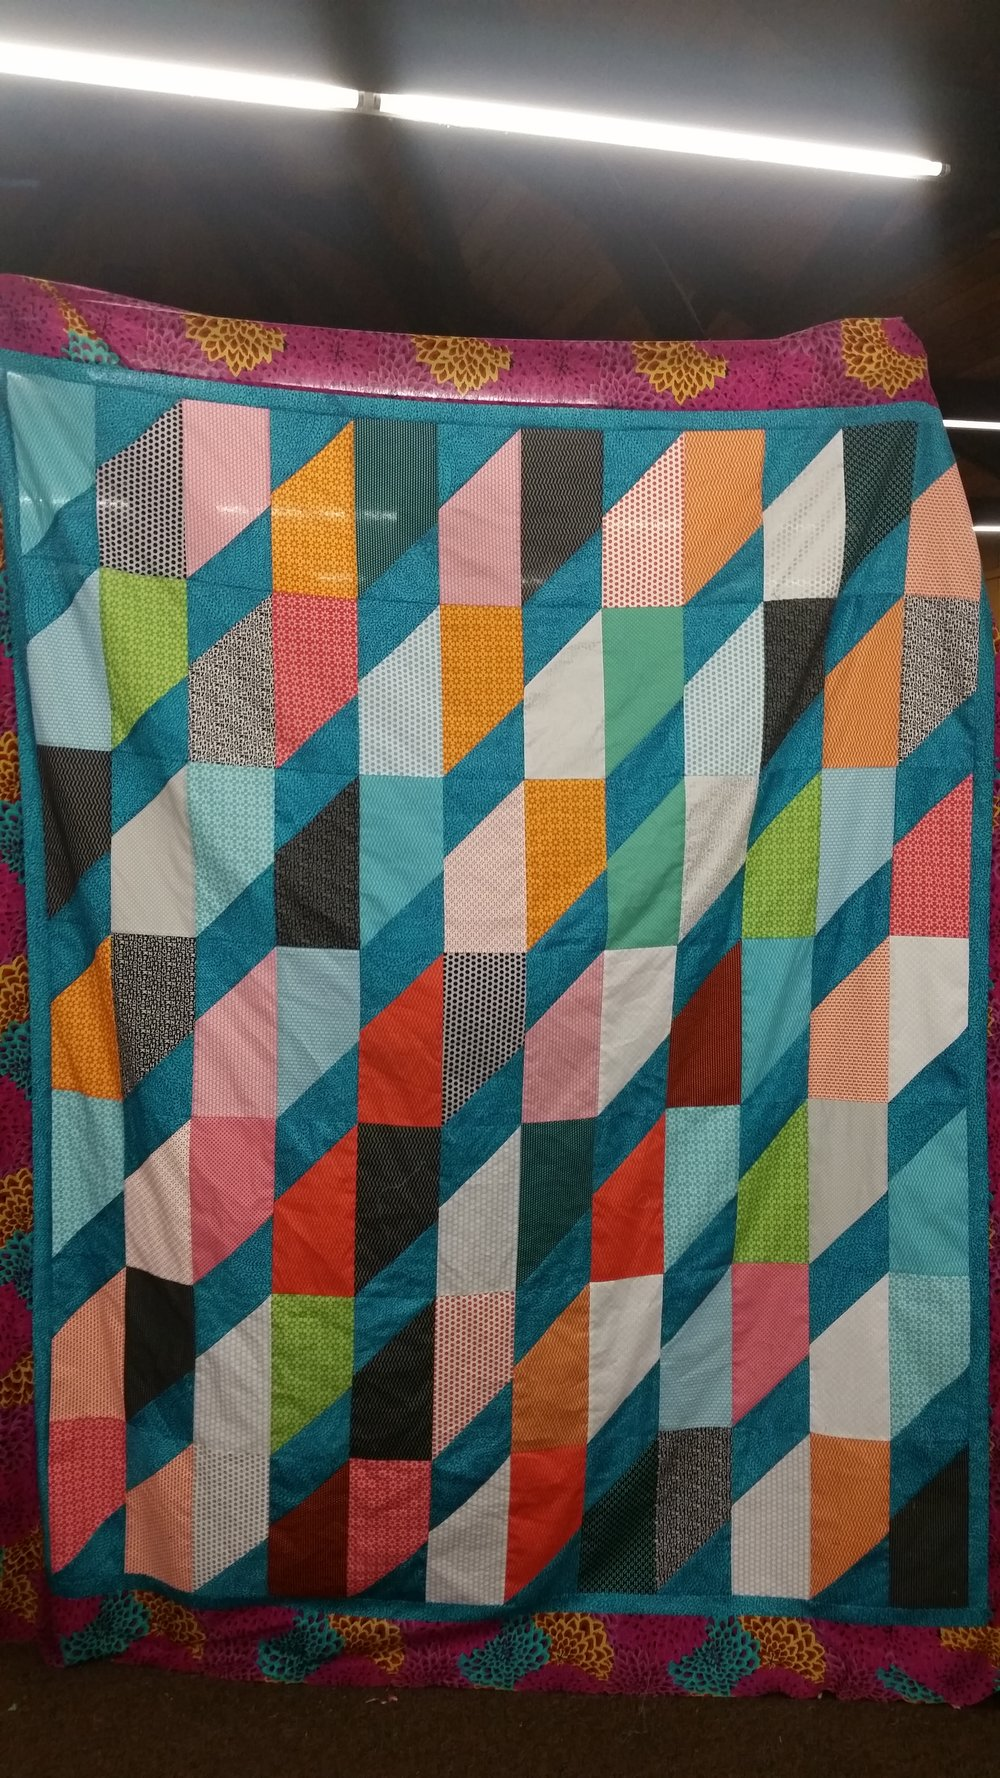 Donna Taylor's Mystery Quilt